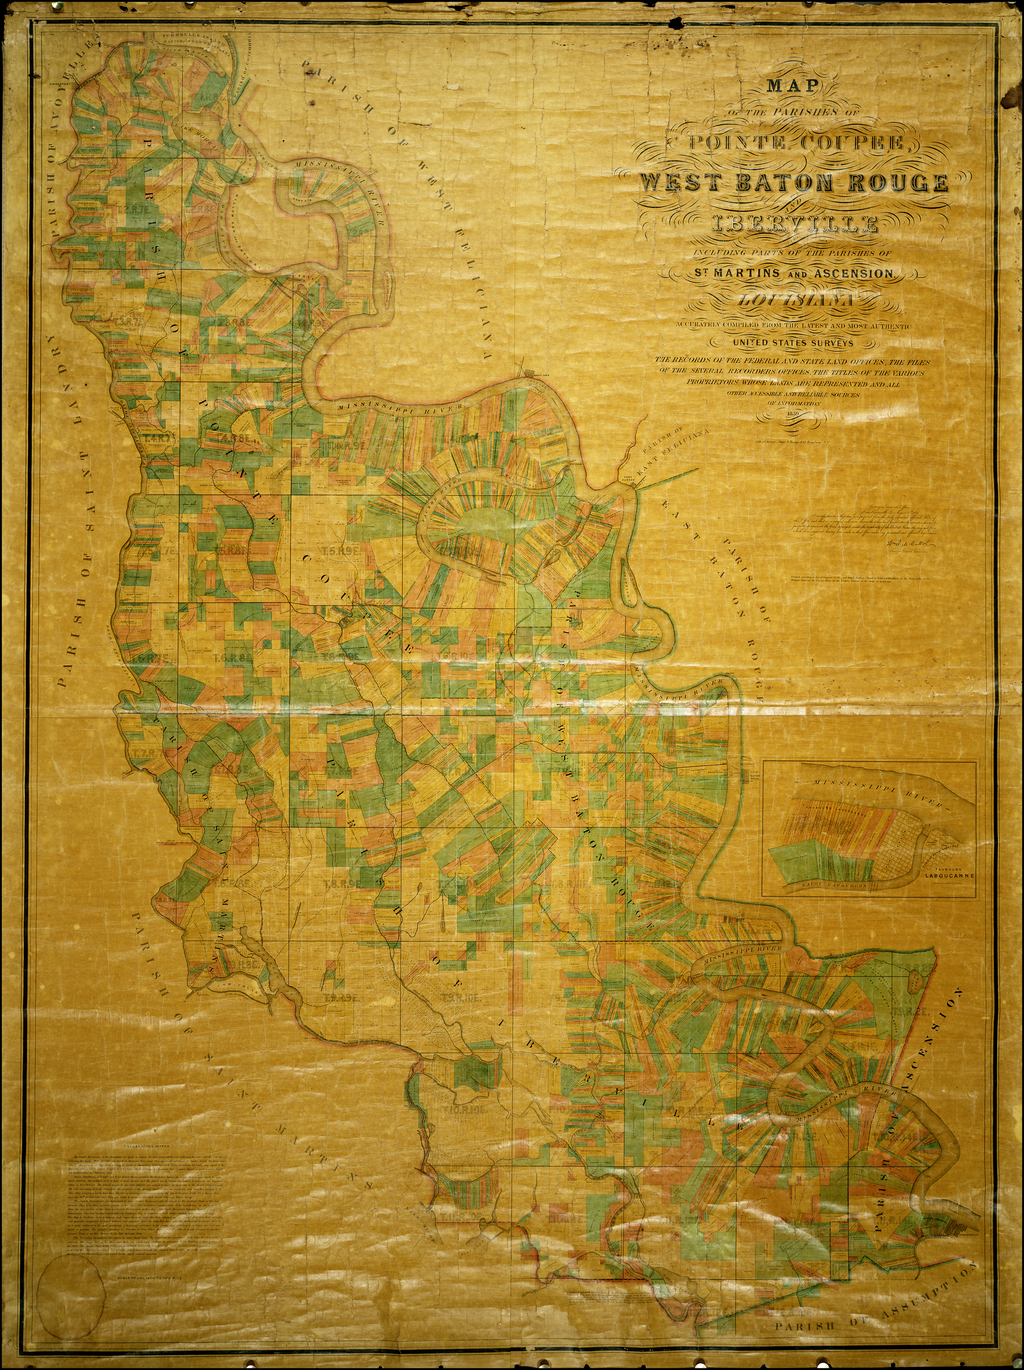 Map of the Parishes of Pointe Coupee, West Baton Rouge and Iberville ...